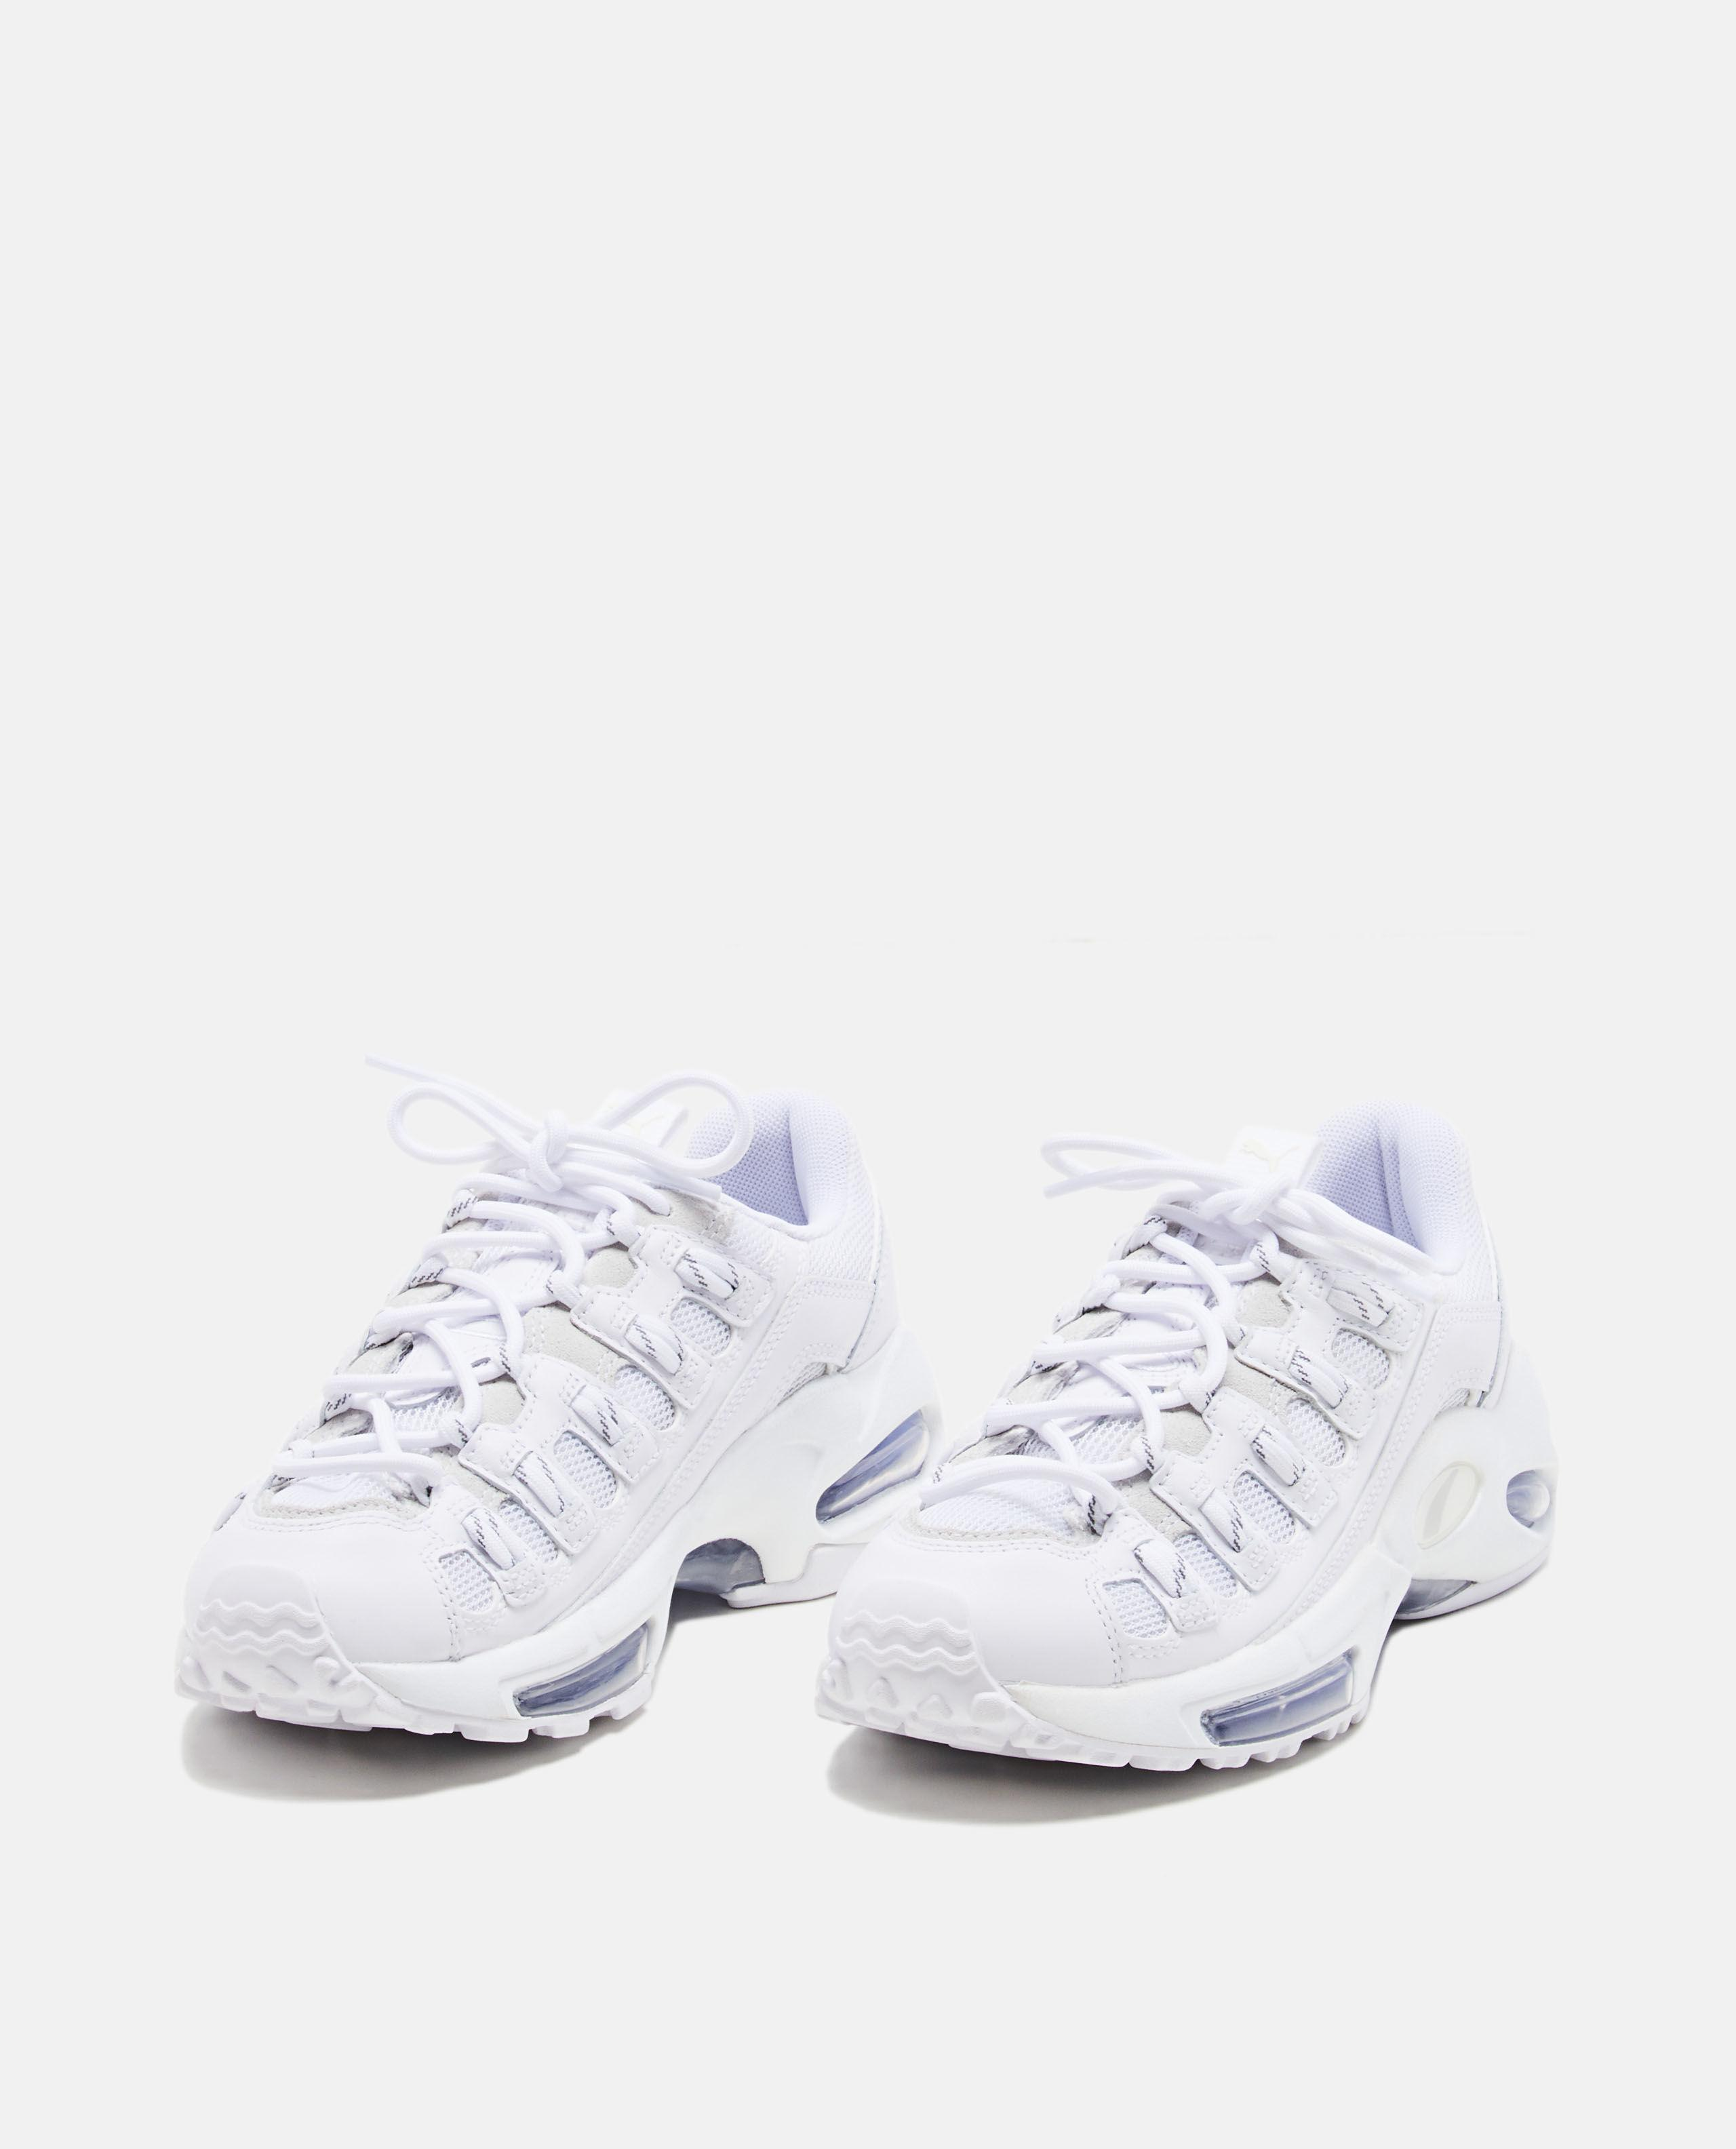 783be1a2cced PUMA Cell Endura Reflective Sneaker in White - Lyst